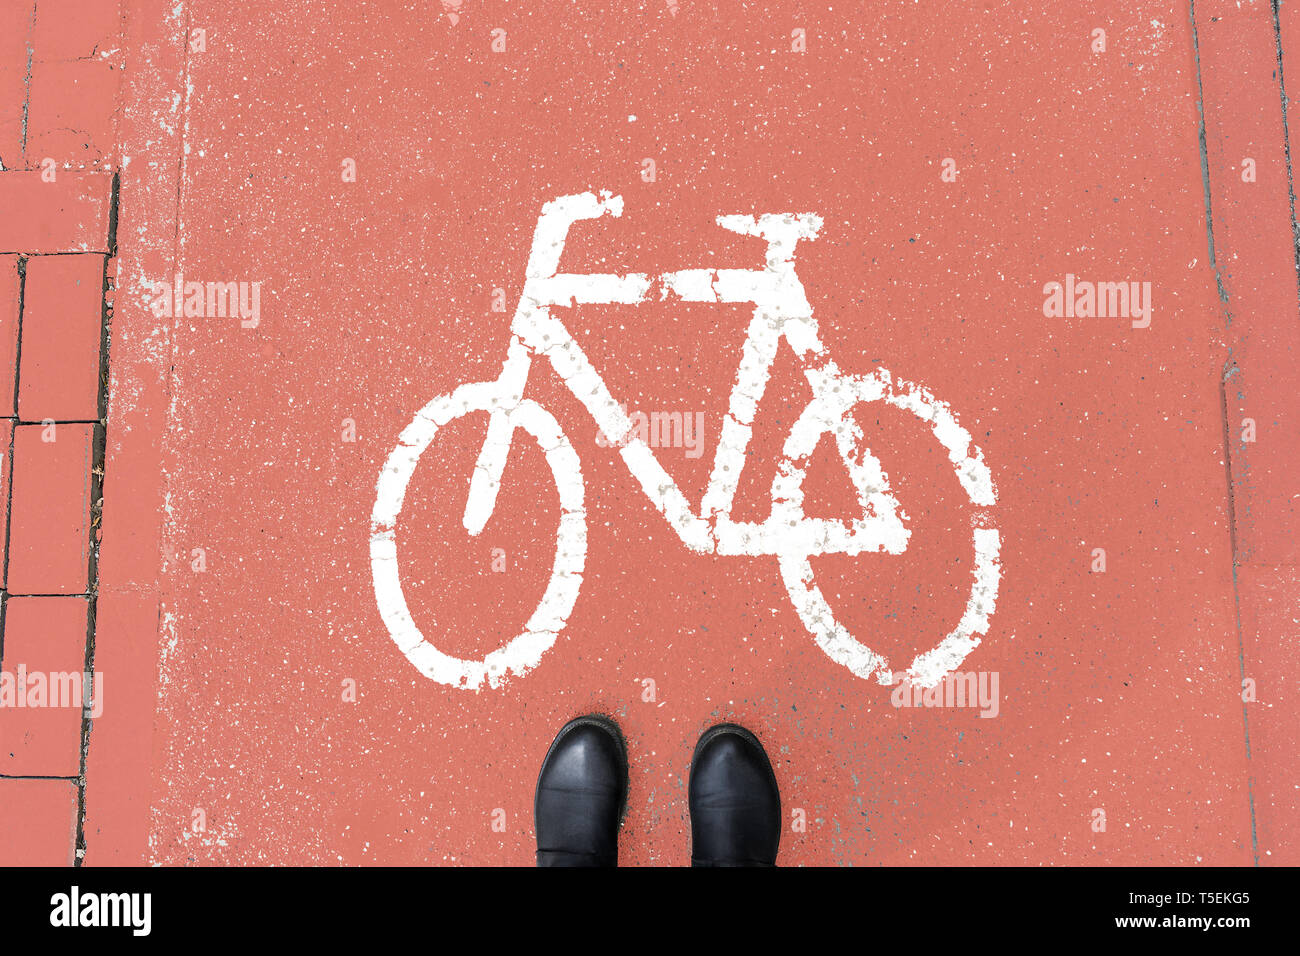 Pedestrian shoes on the coral-colored walkway for cyclists. Warning of danger. Stock Photo